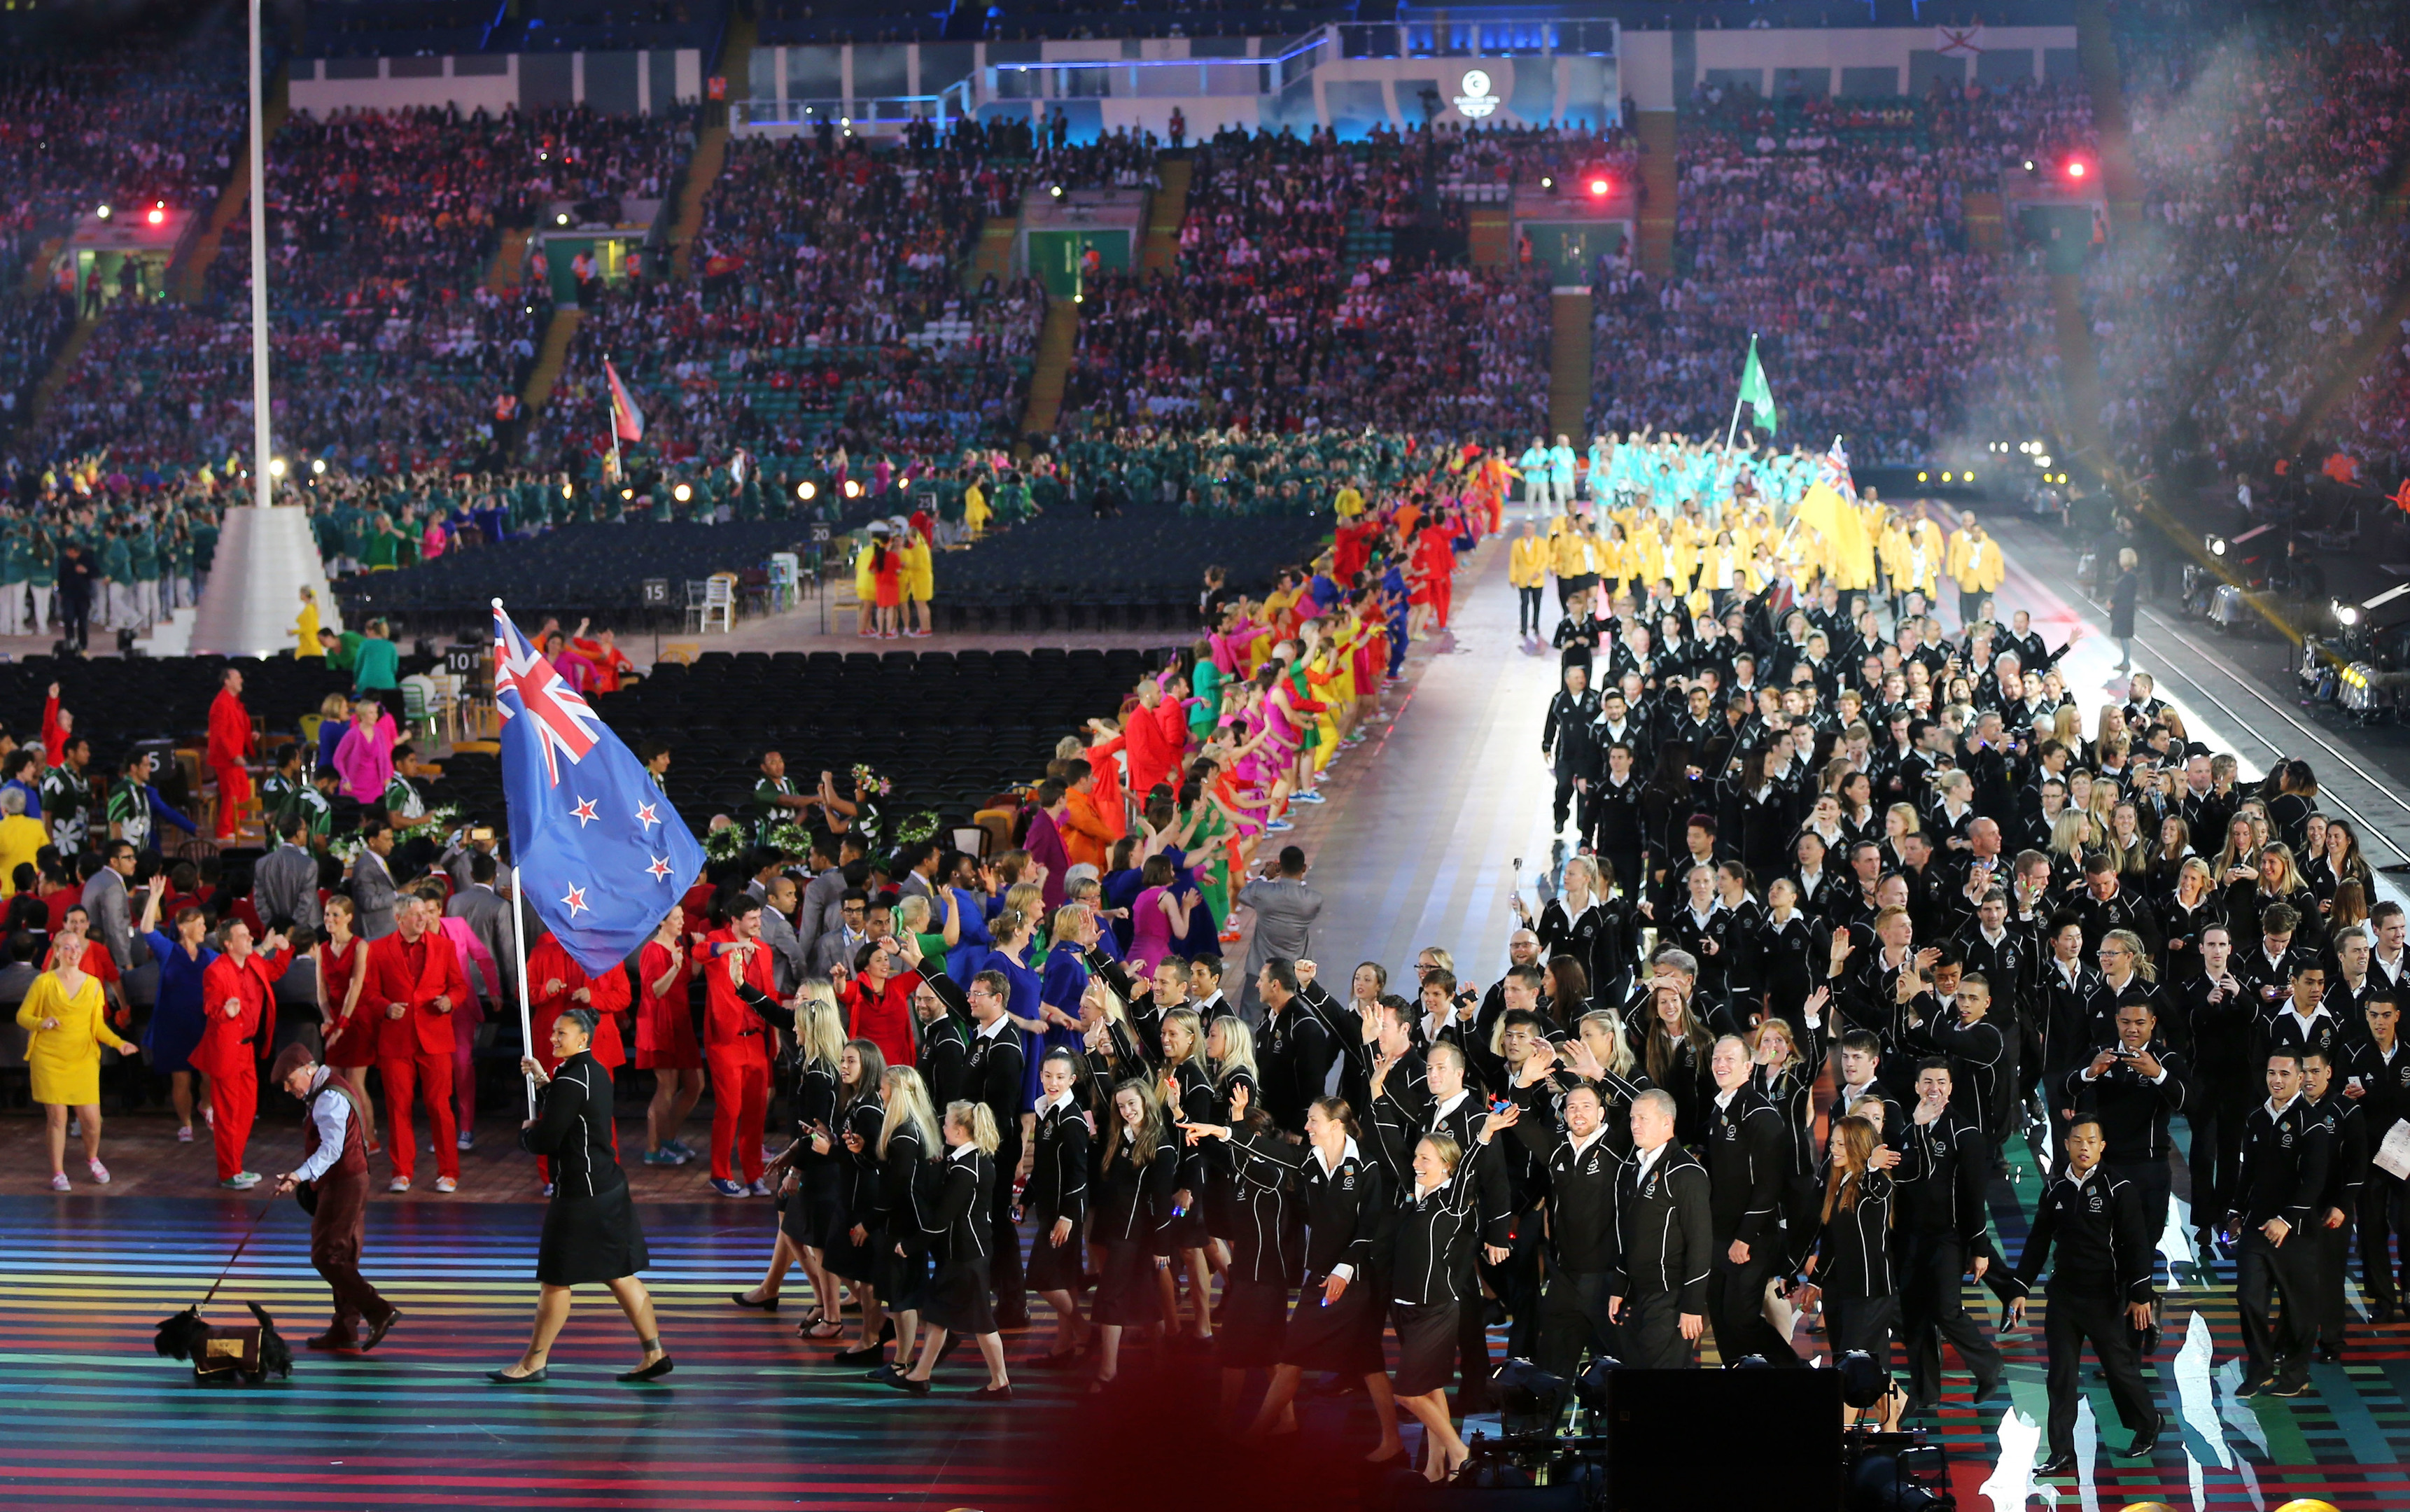 The New Zealand athletes during the opening ceremony for the Glasgow 2014 Commonwealth Games at Celtic Park.